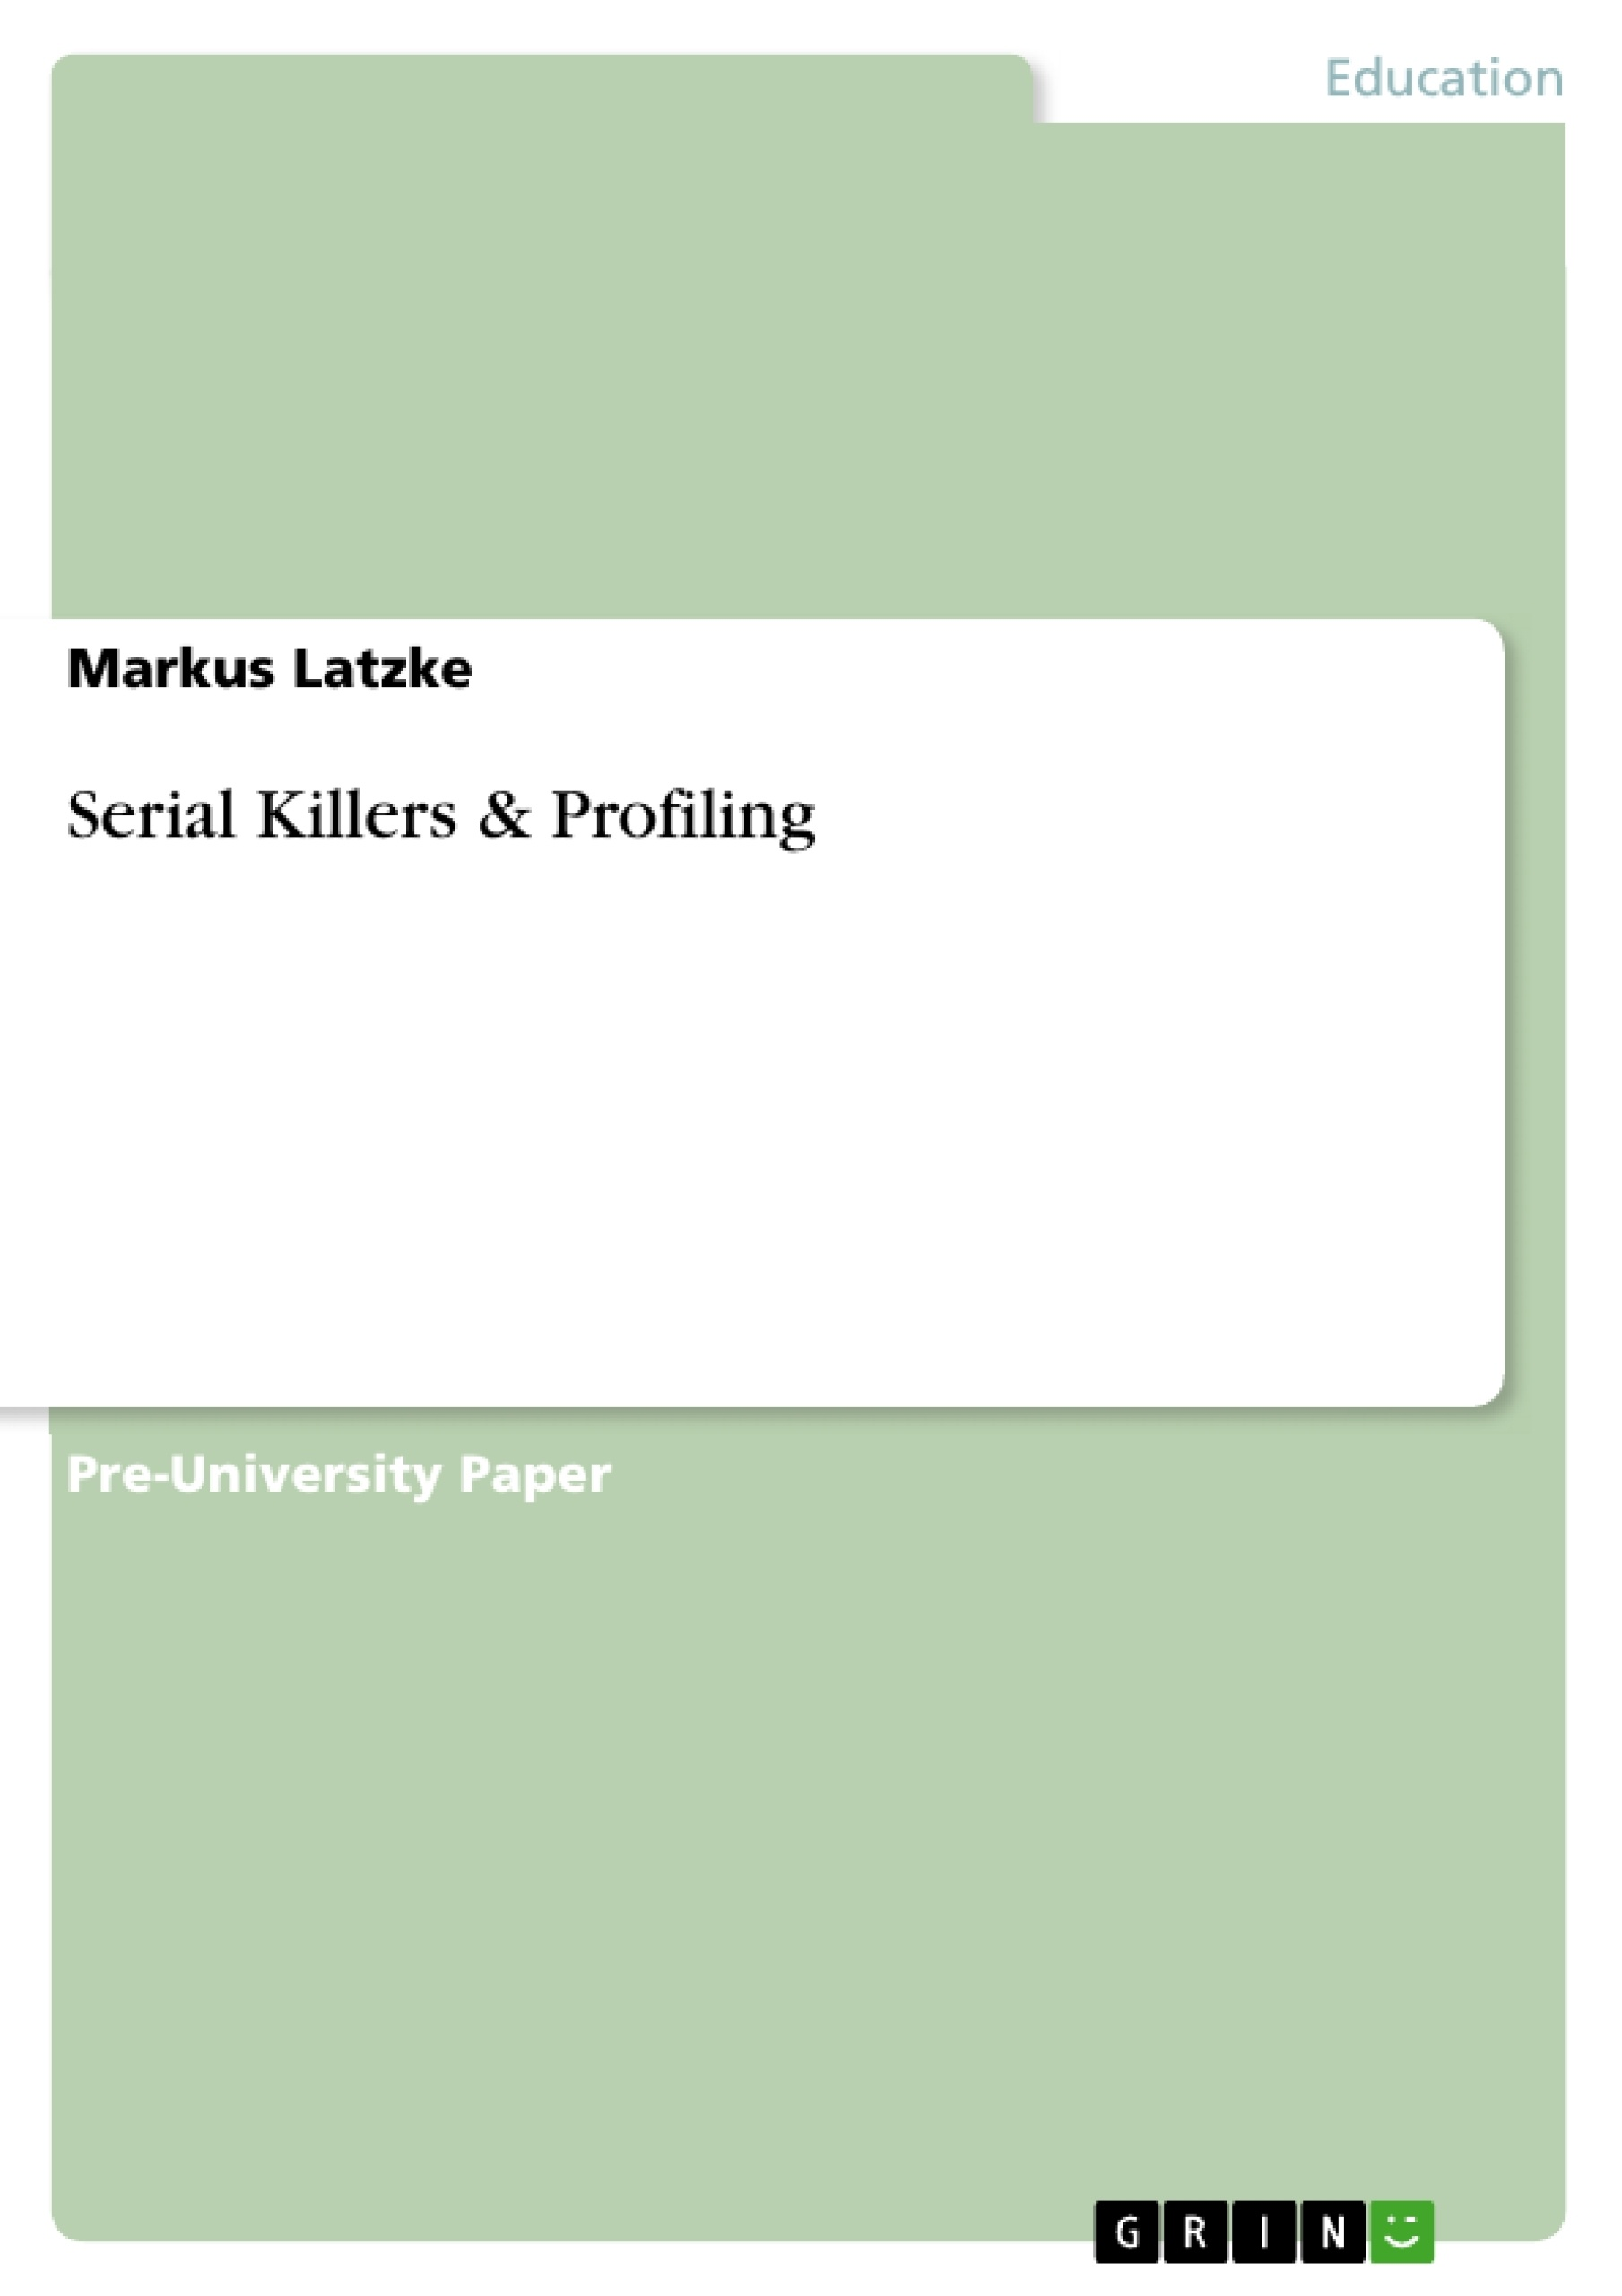 Thesis statement on serial killers